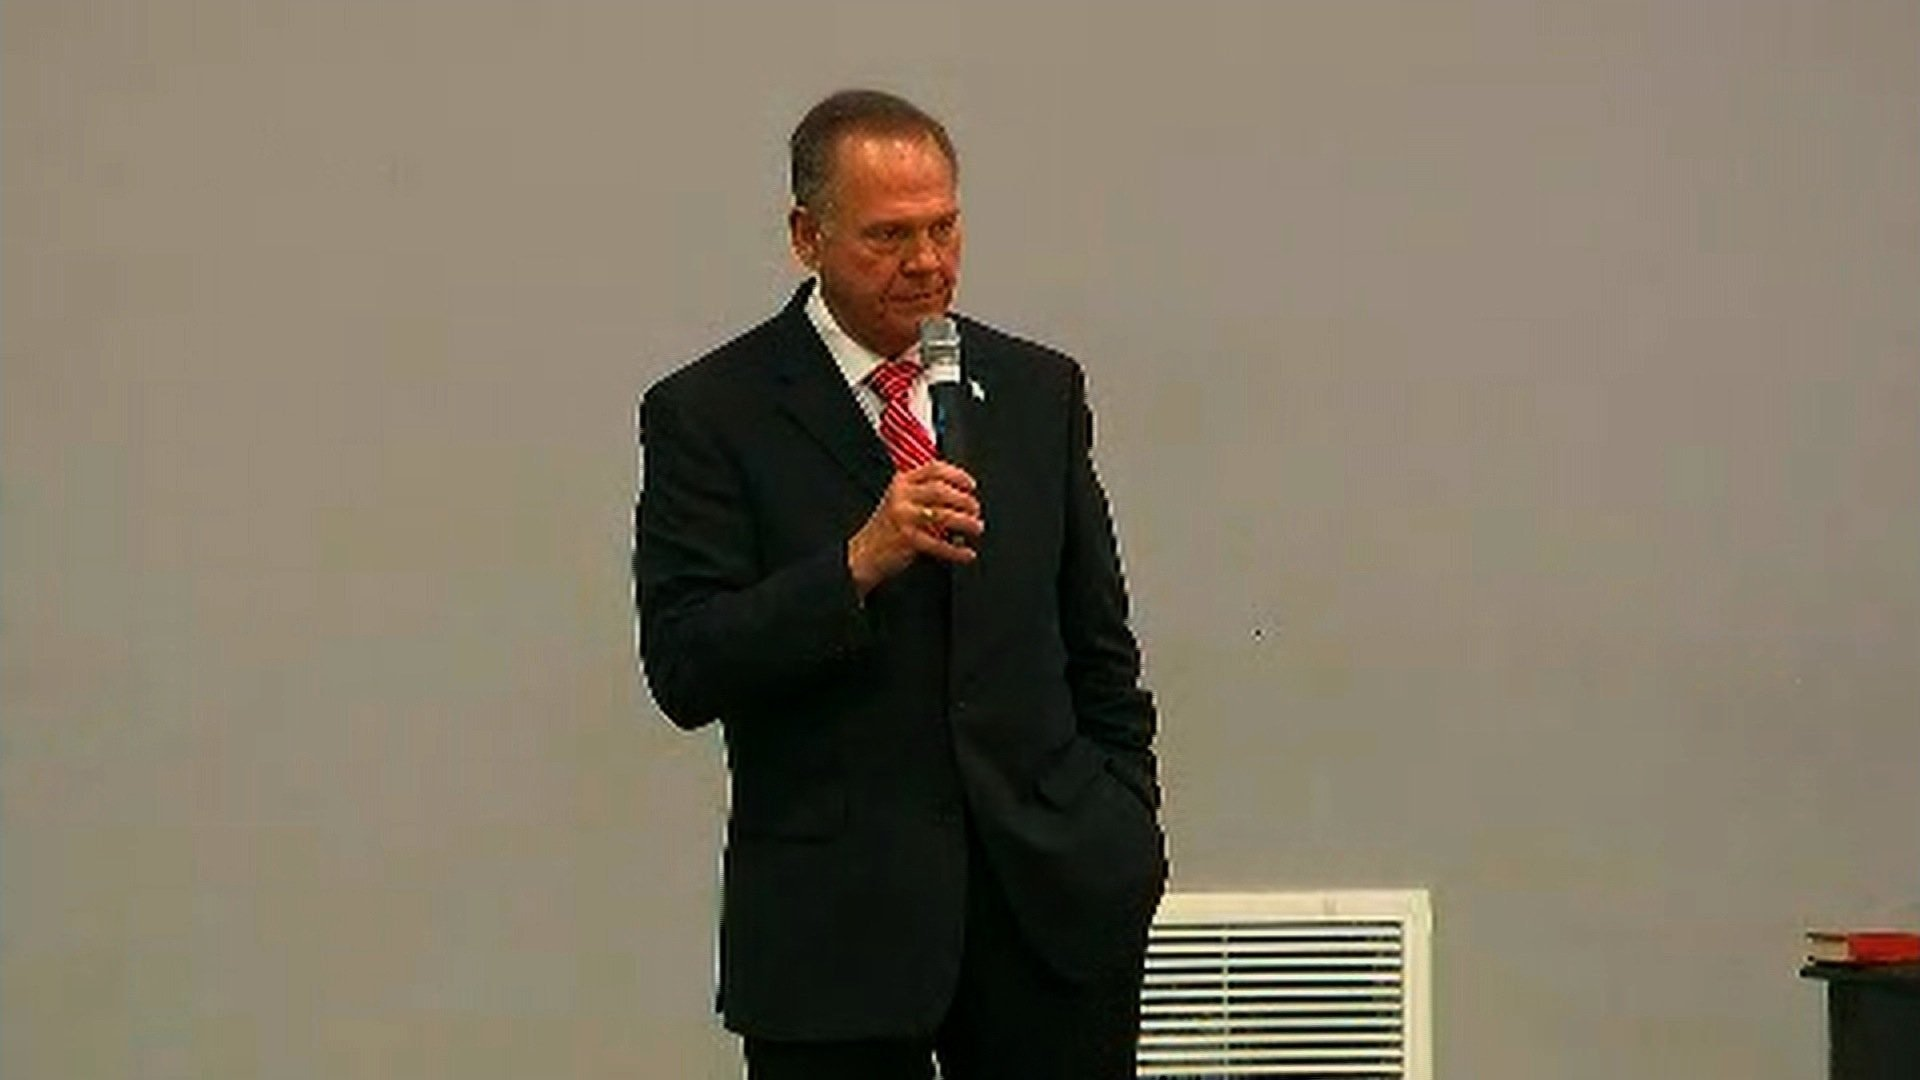 """Judge Roy Moore speaks at the """"God Save America Revival Conference,"""" hosted by Walker Springs Road Baptist Church in Jackson, Alabama on November 14, 2017."""